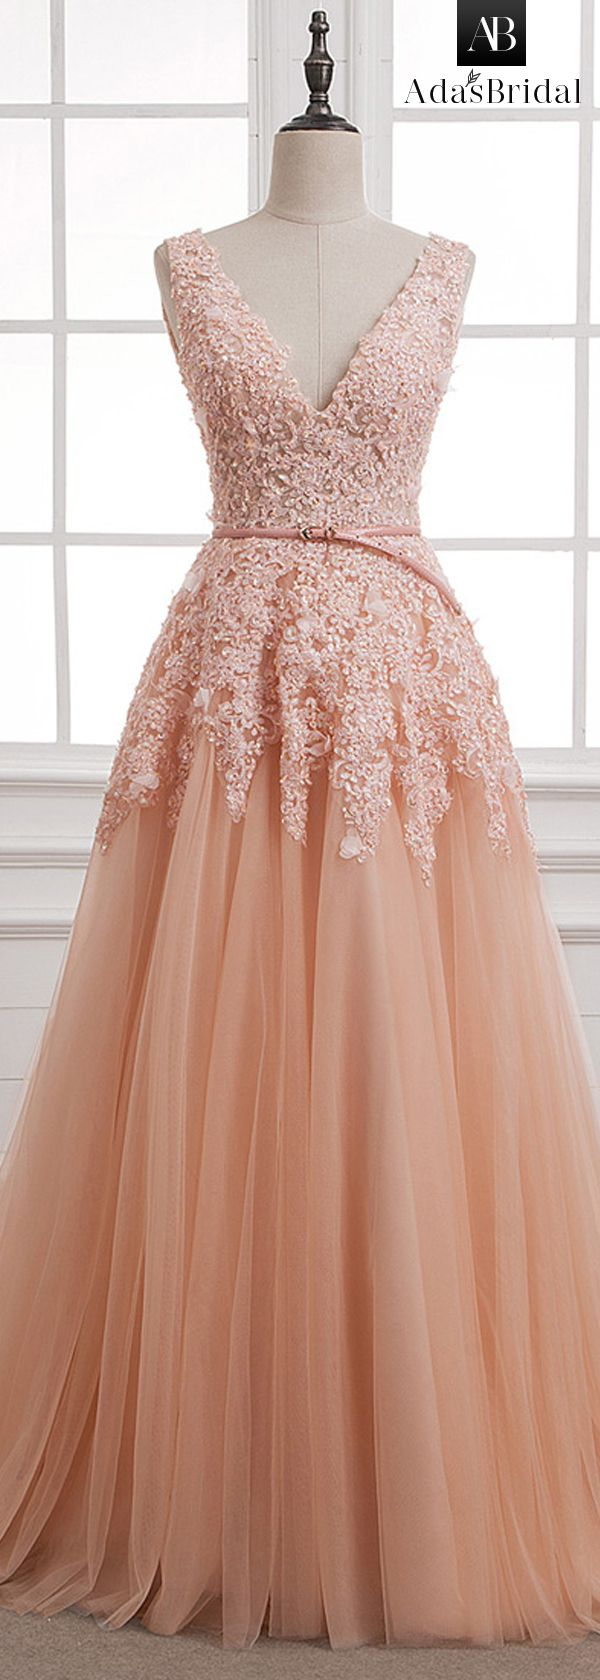 NEW! Stunning Tulle & Lace V-neck Neckline A-Line Evening Dresses With Beaded Lace Appliques & Belt